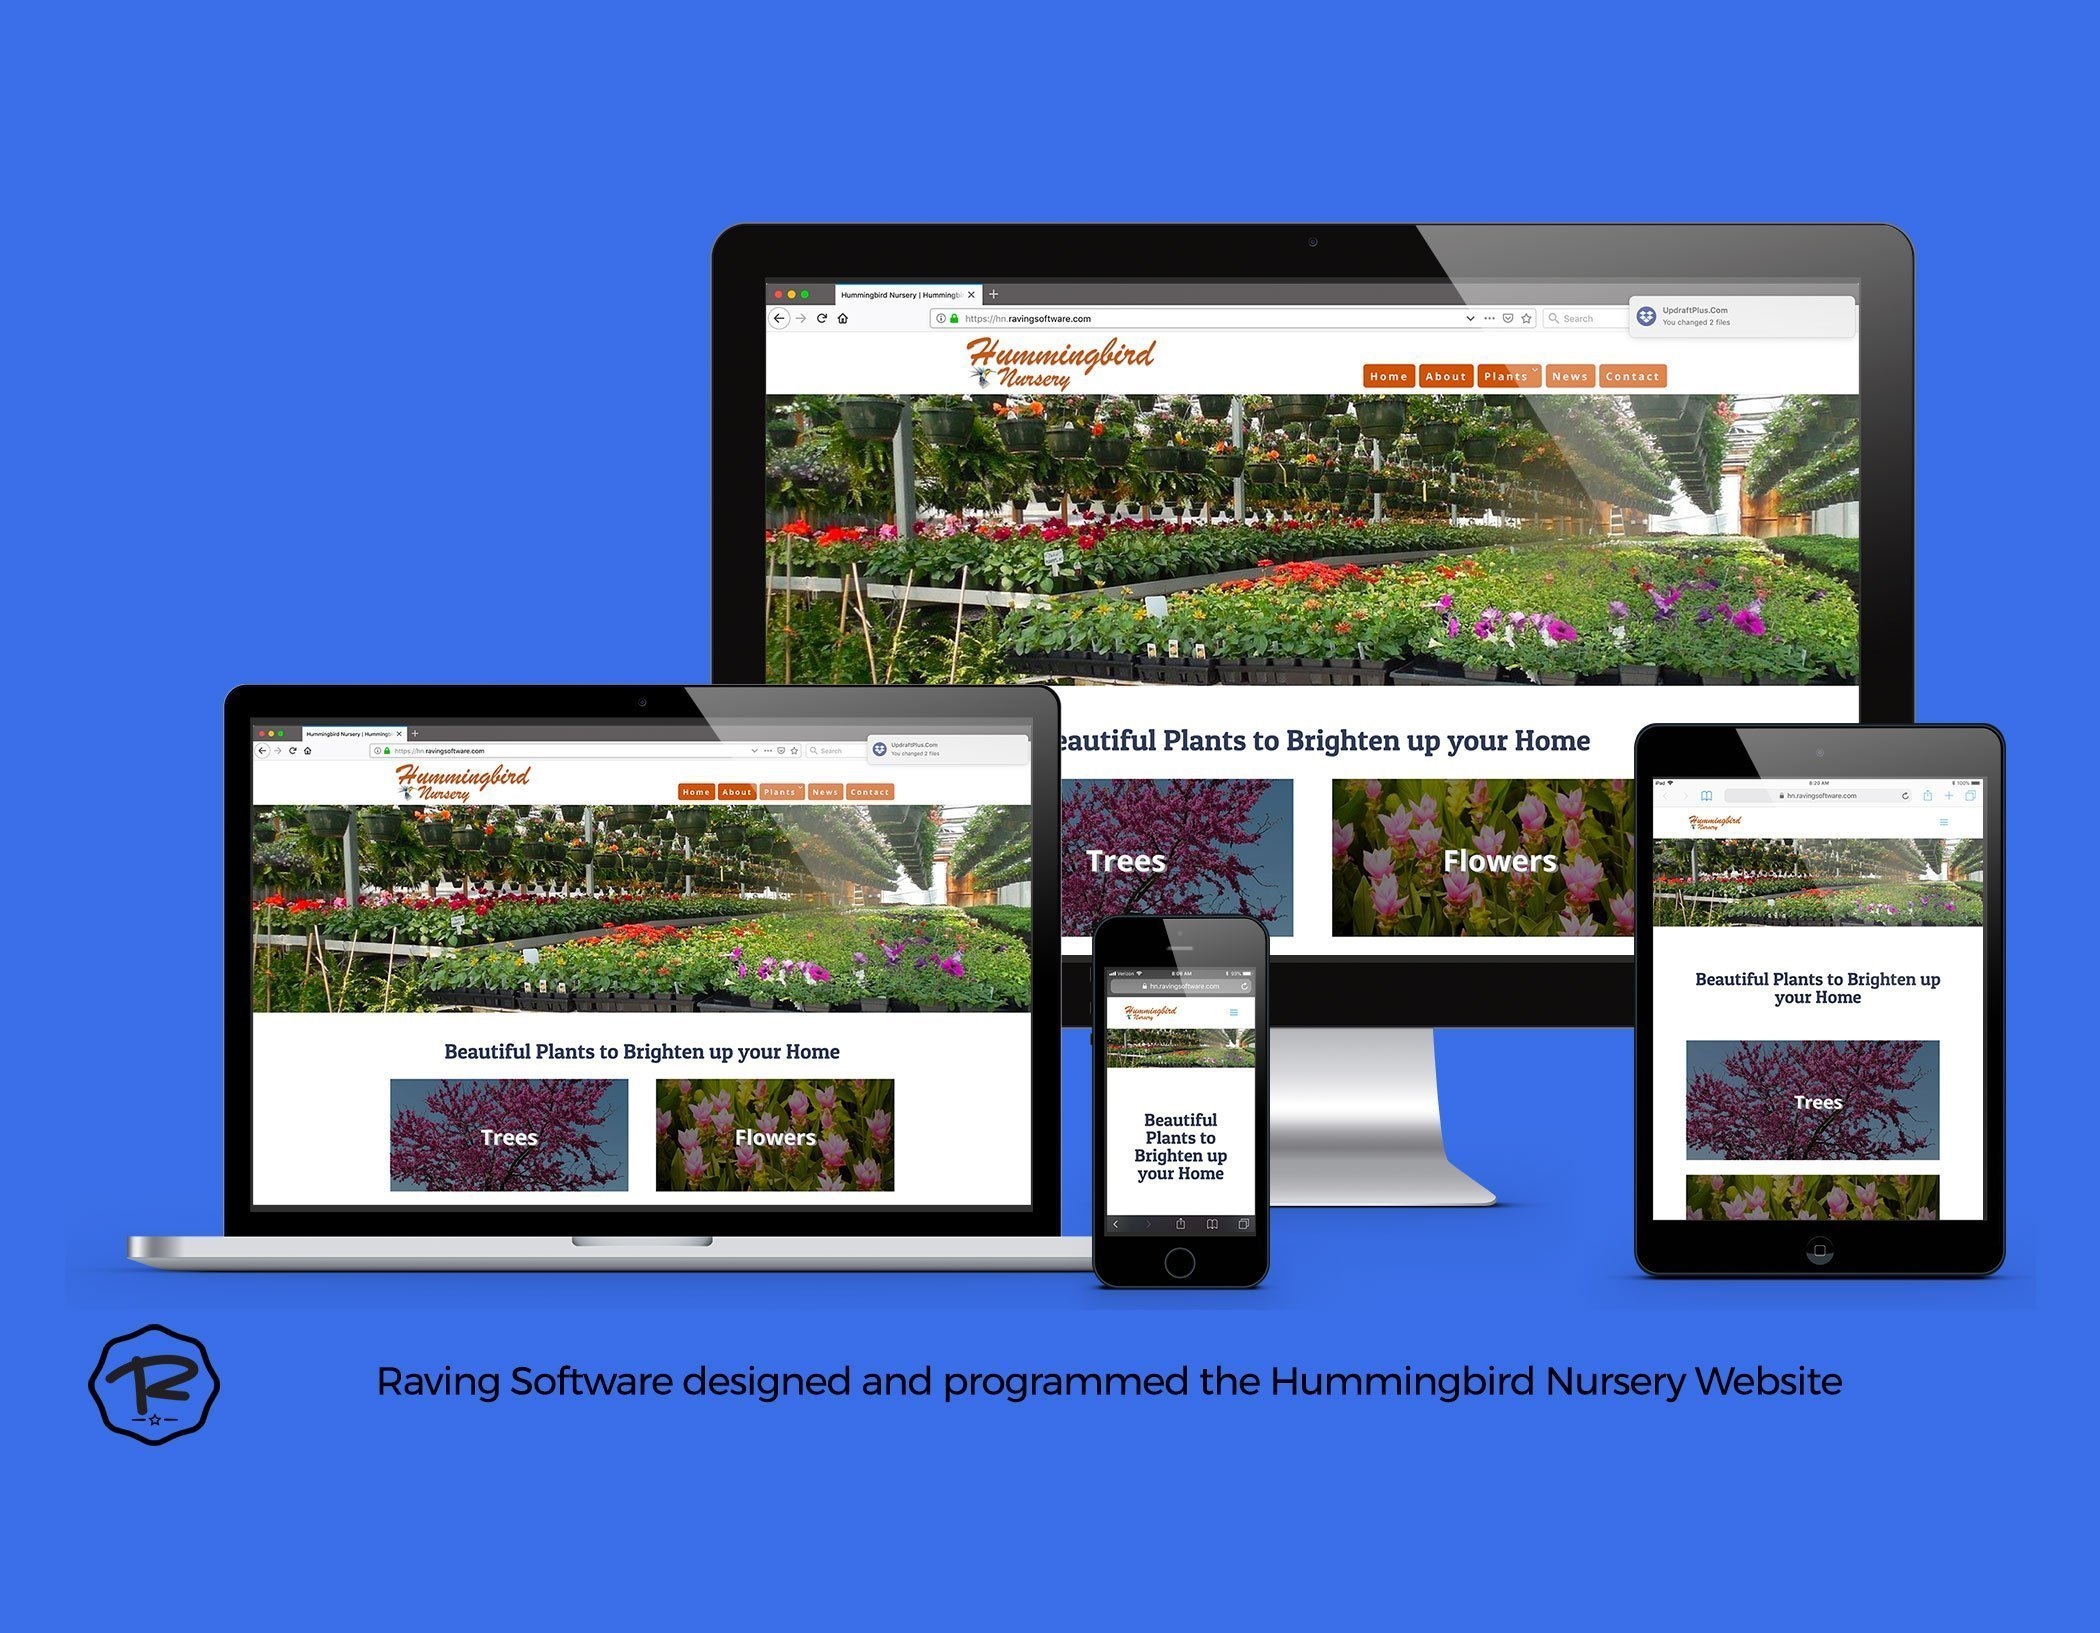 The Hummingbird Nursery website created by Raving Software